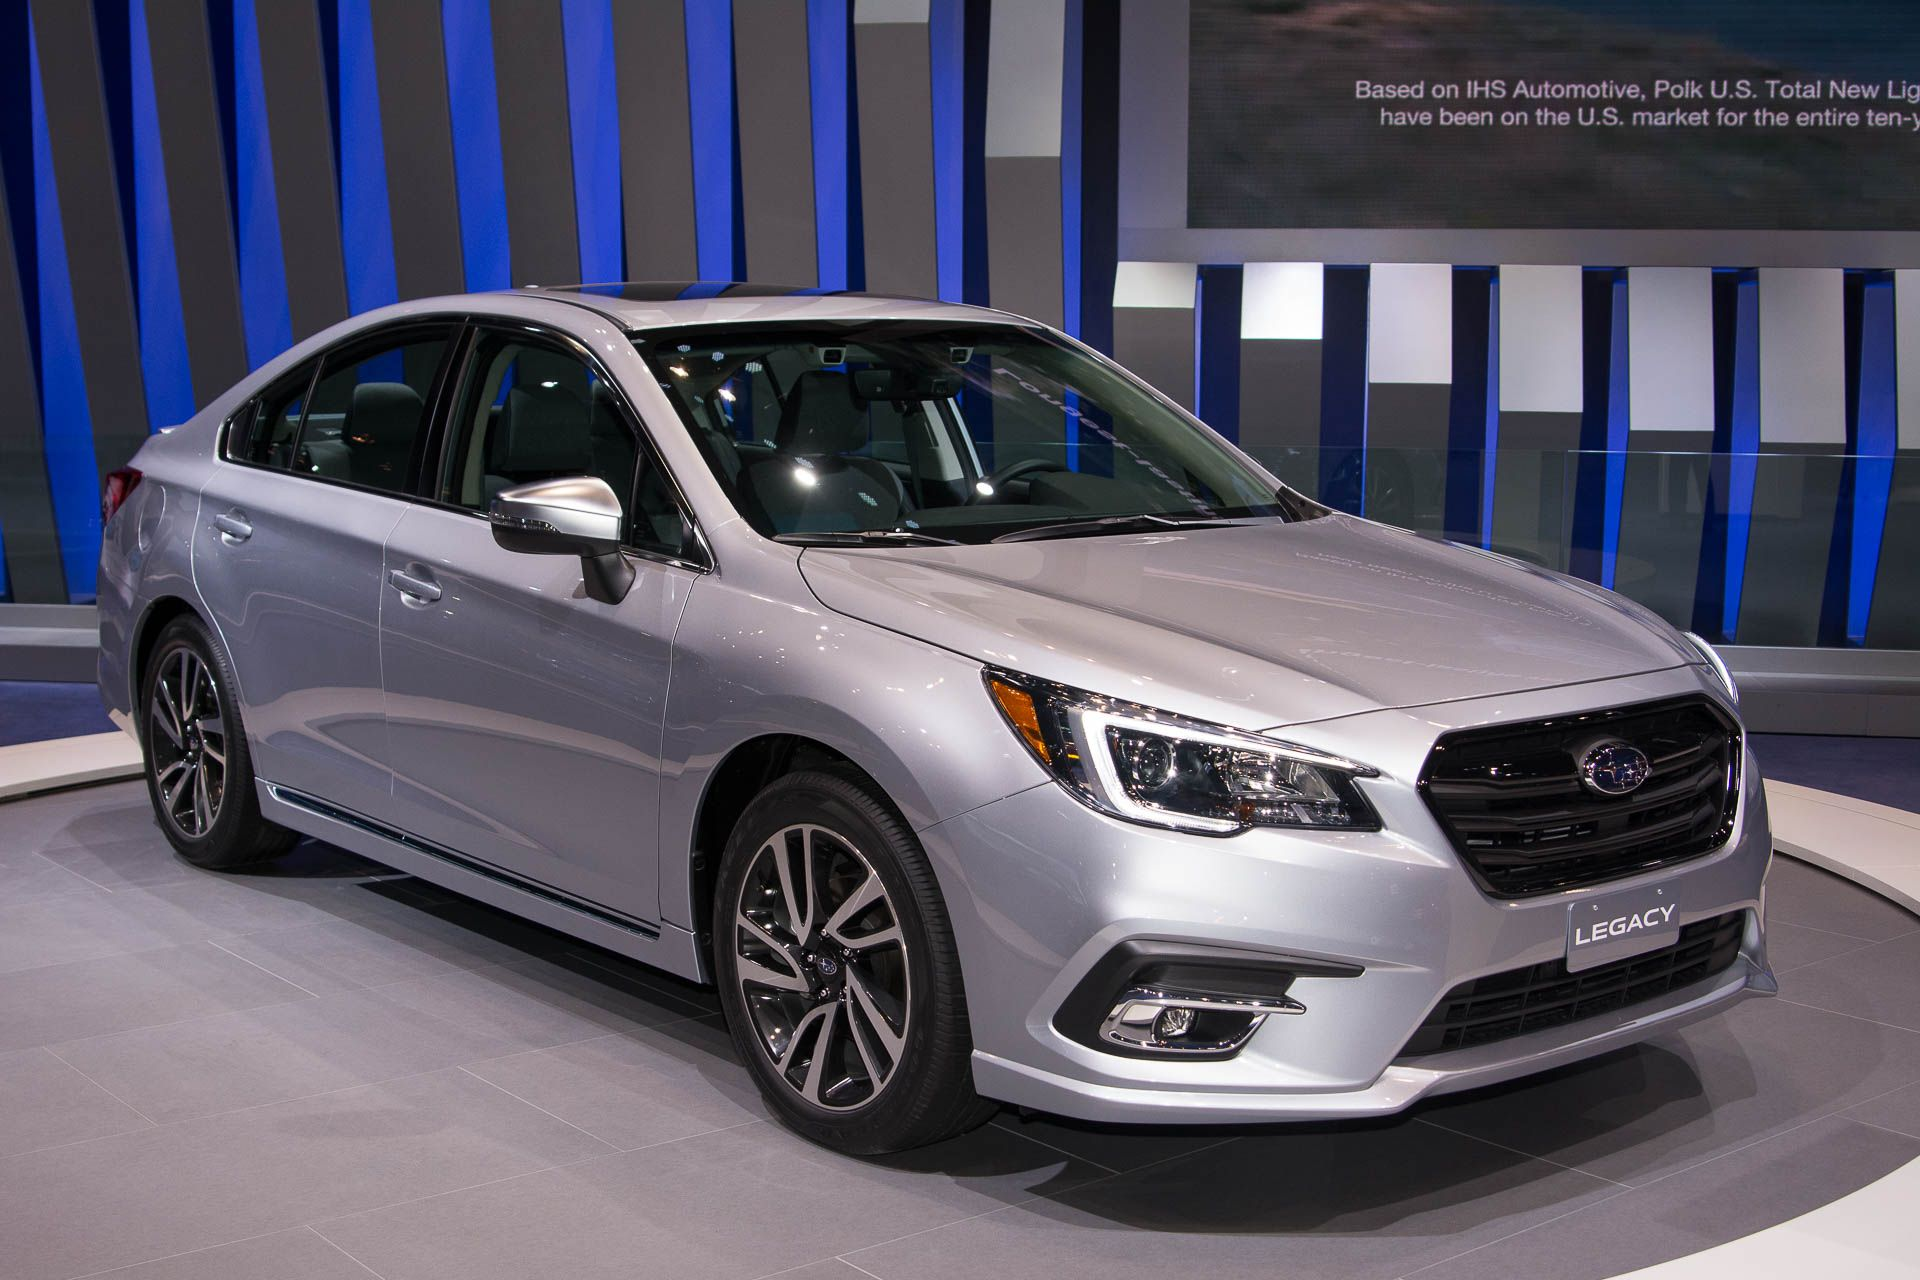 Get The Latest Reviews Of The 2018 Subaru Legacy Find Prices Buying Advice Pictures Expert Ratings Safety Feature Subaru Legacy Gt Subaru Legacy Legacy Gt